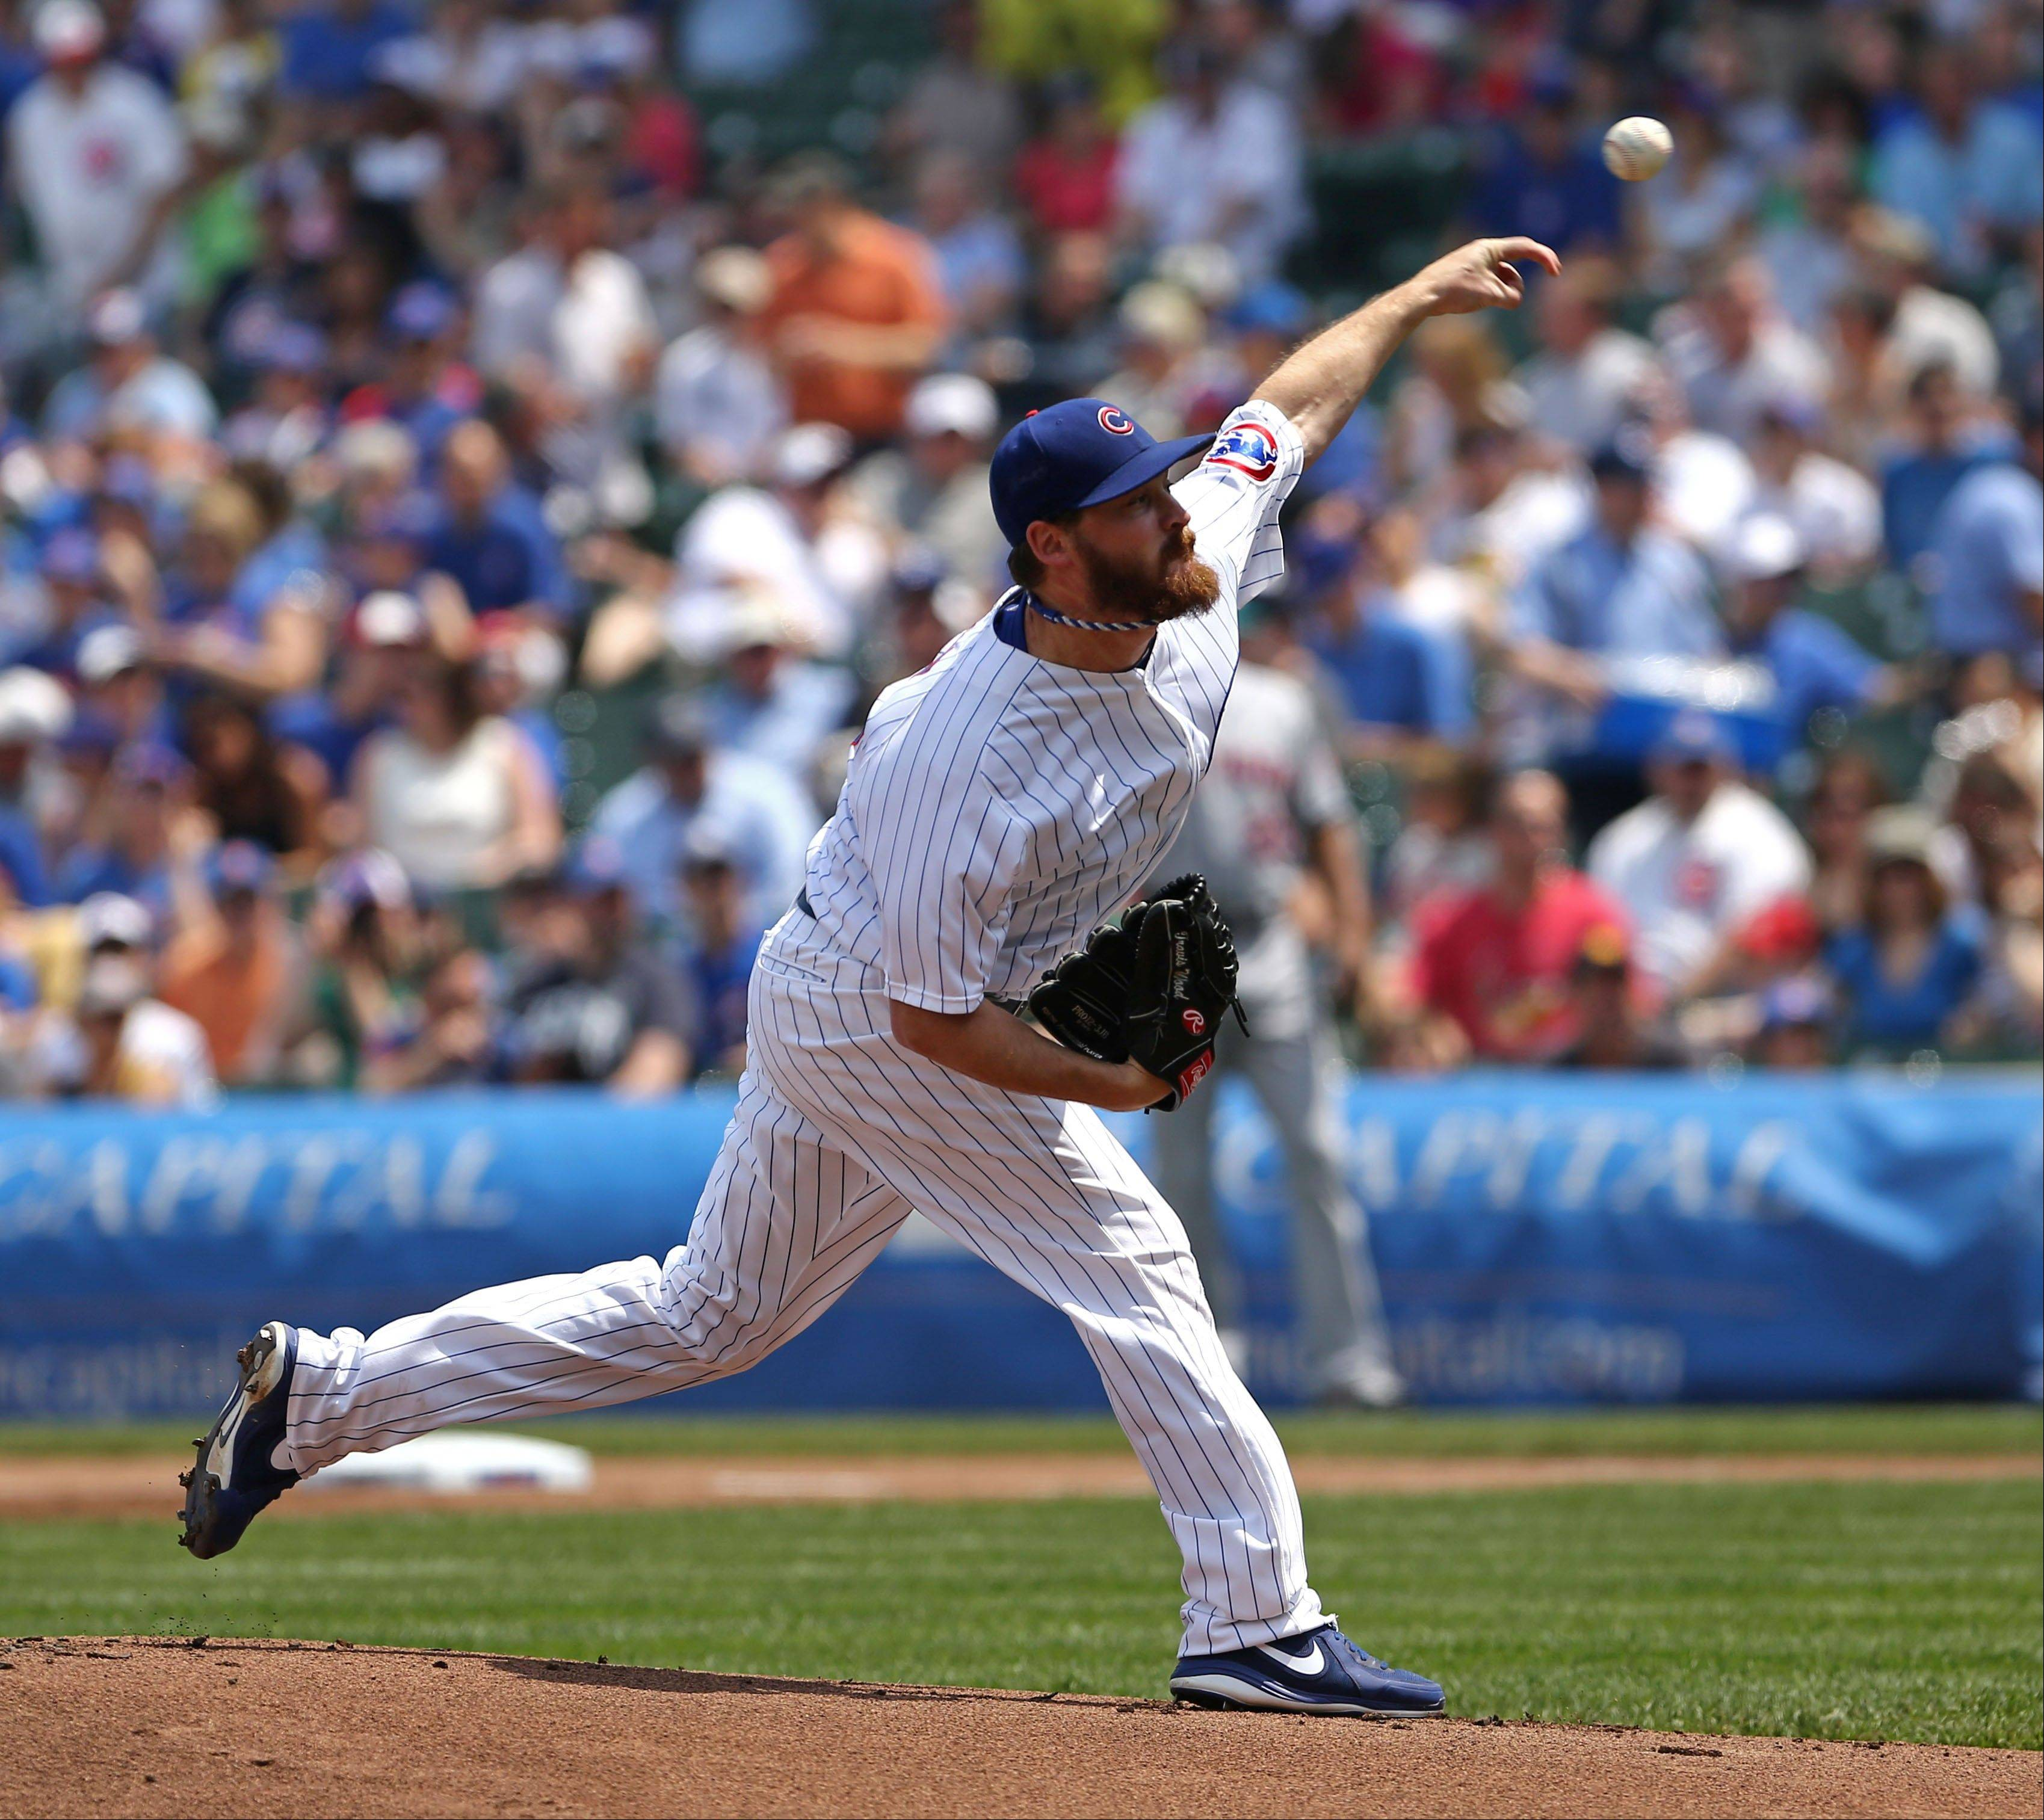 Cubs starting pitcher Travis Wood works against the Mets on Sunday at Wrigley Field.